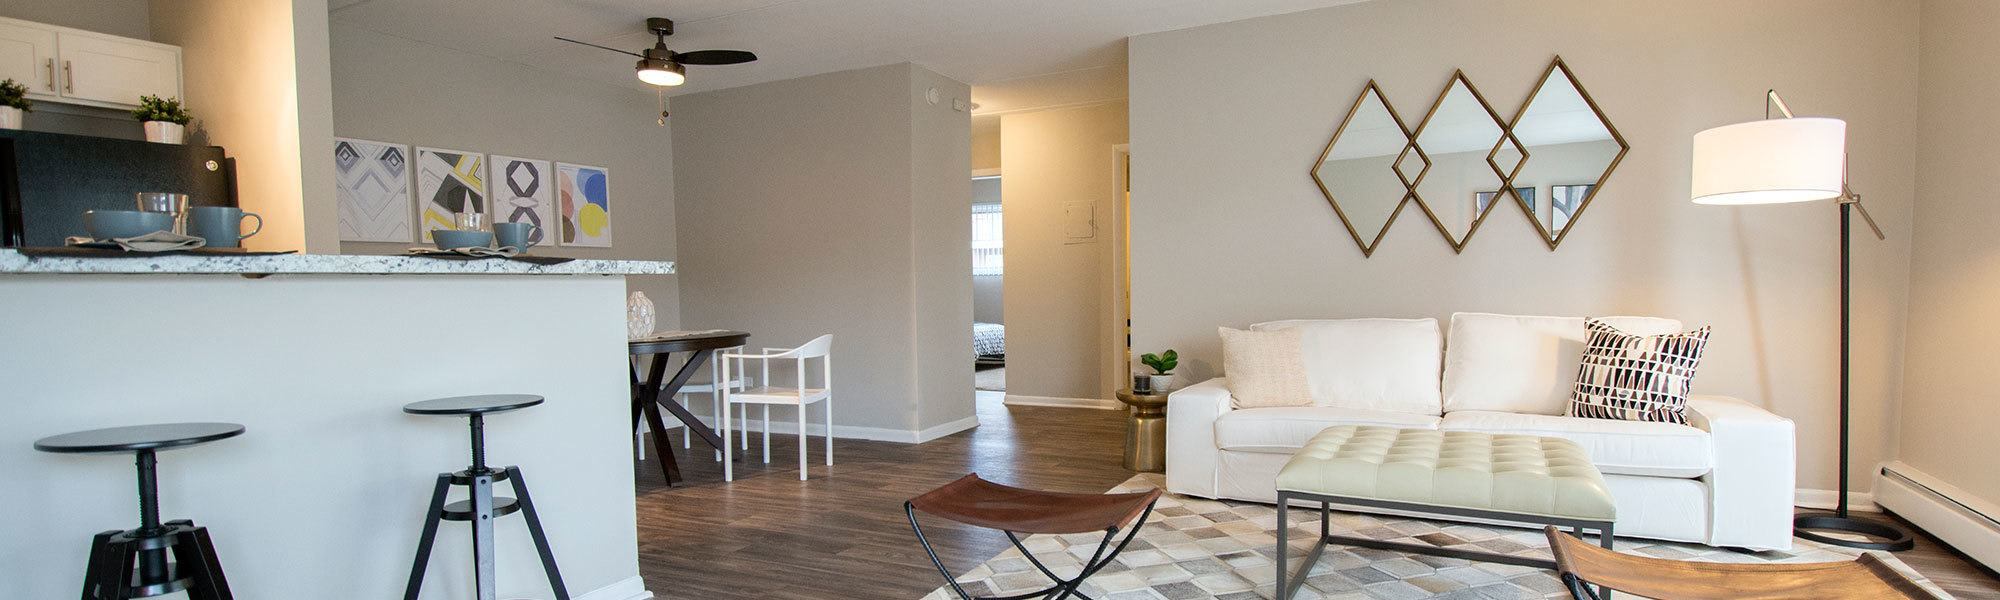 Resident information for the apartments for rent in Westmont